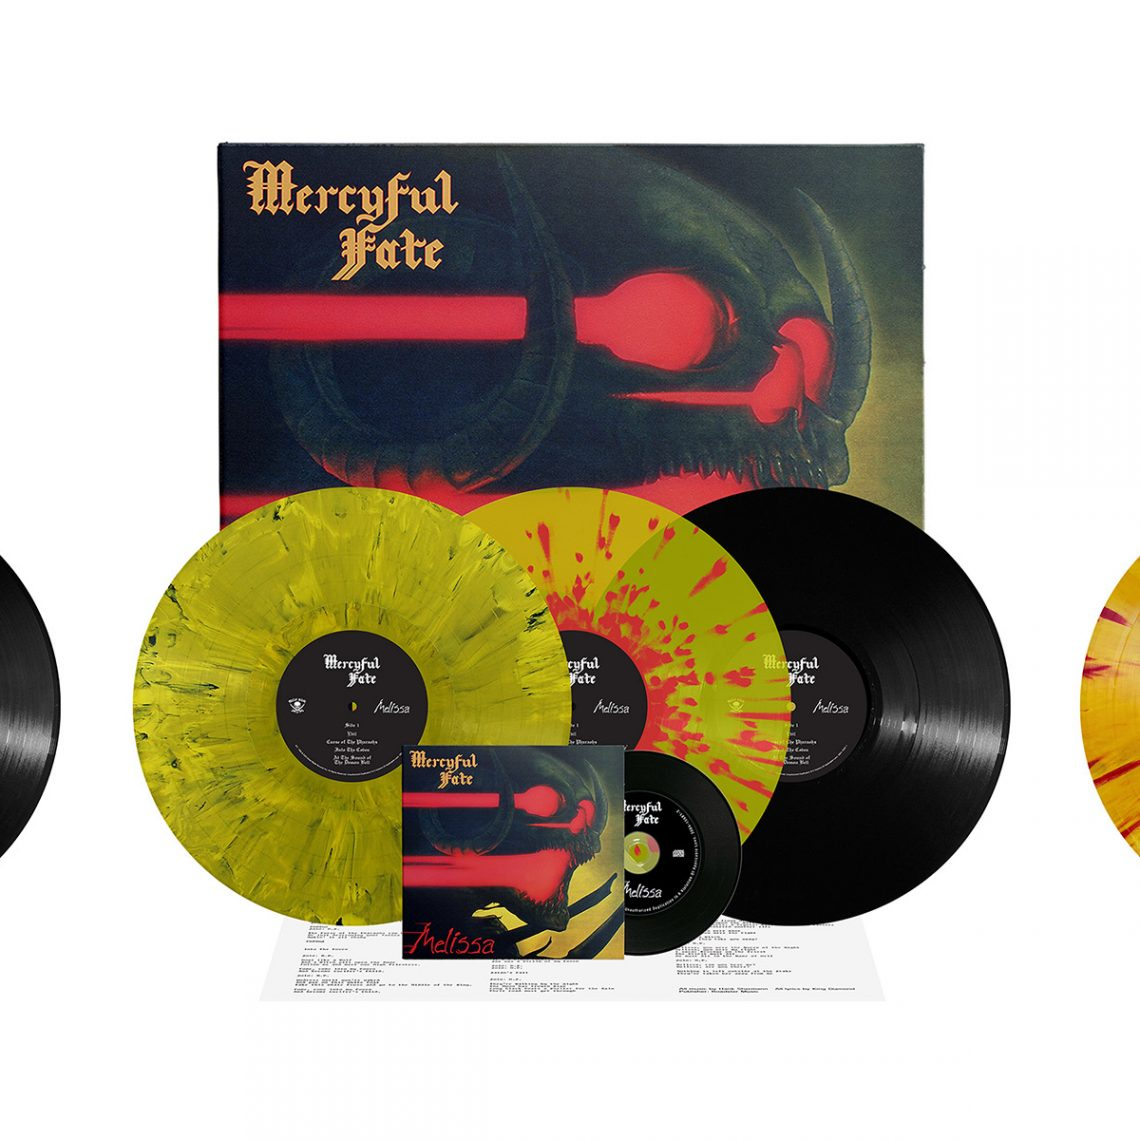 Mercyful Fate: 'Don't Break the Oath', 'Melissa', 'Mercyful Fate' re-issues now available for pre-order via Metal Blade Records